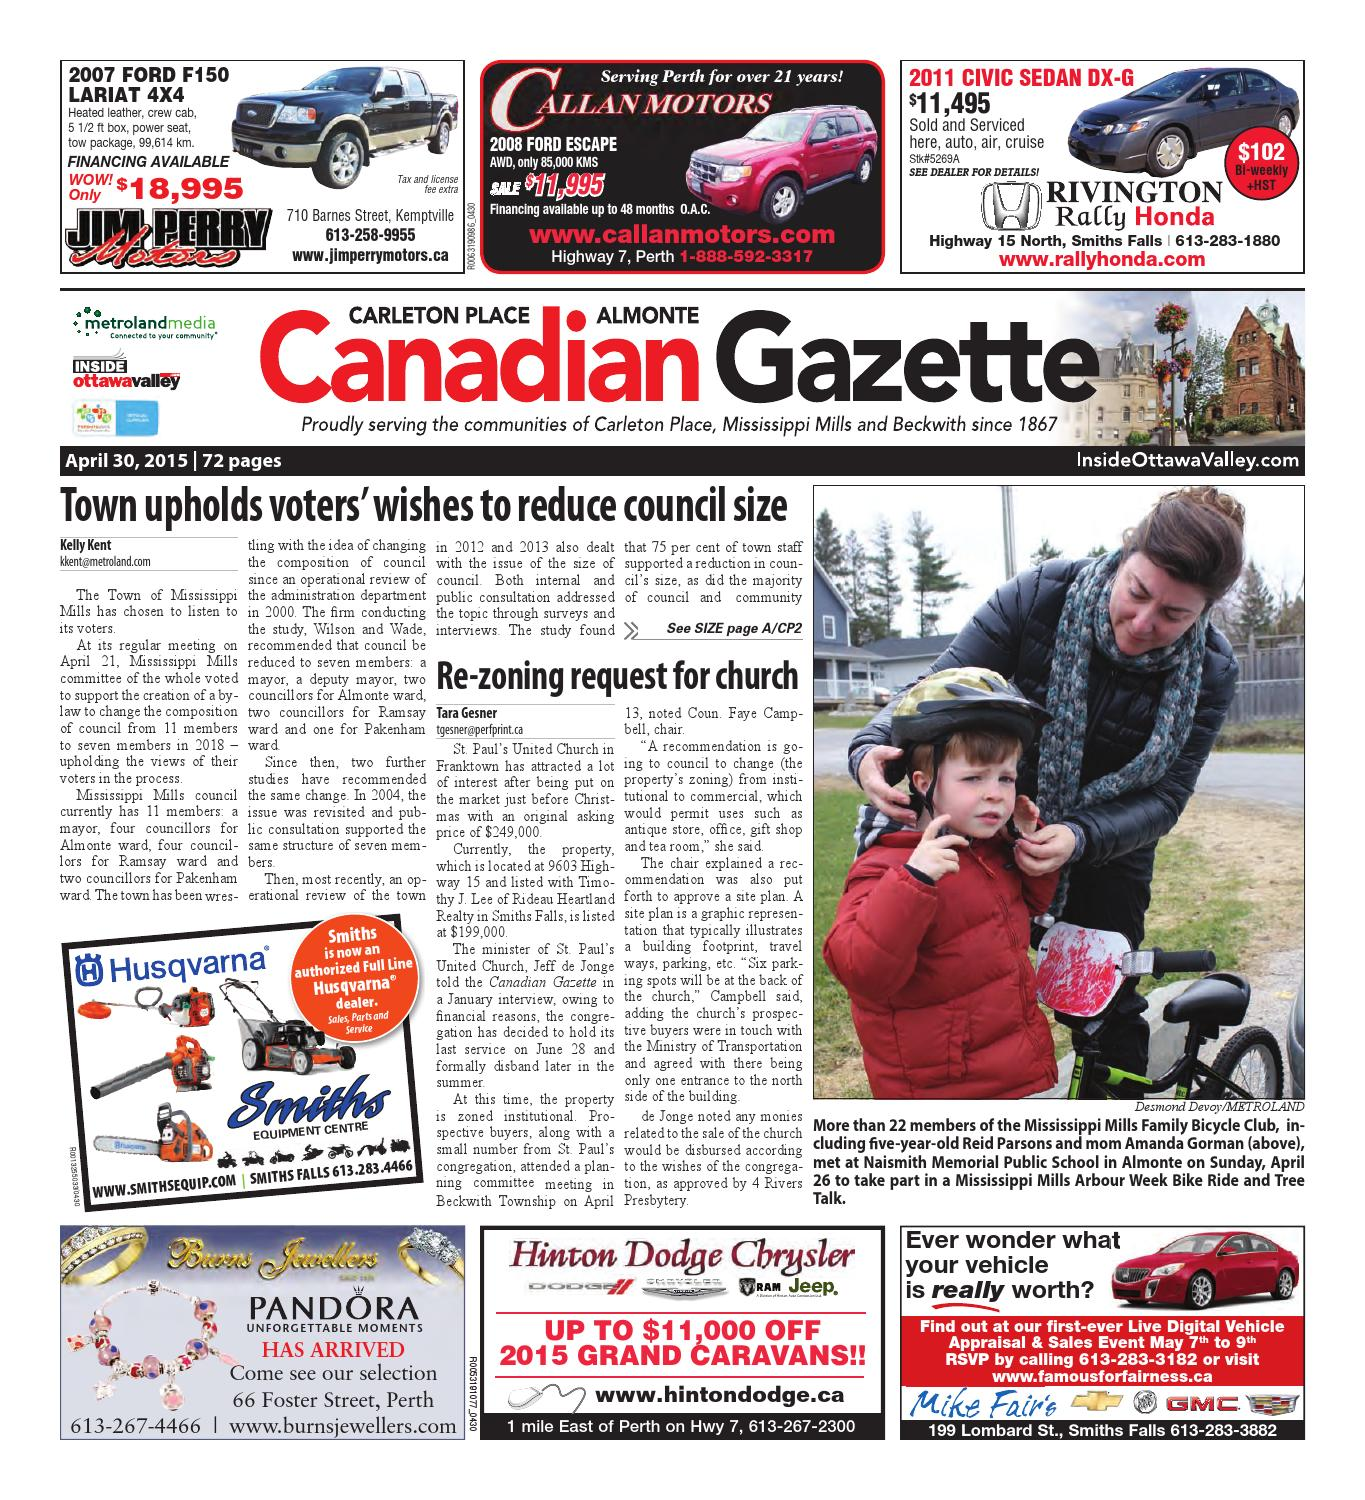 Almontecarletonplace043015 by Metroland East - Almonte Carleton Place  Canadian Gazette - issuu b1fdb5907